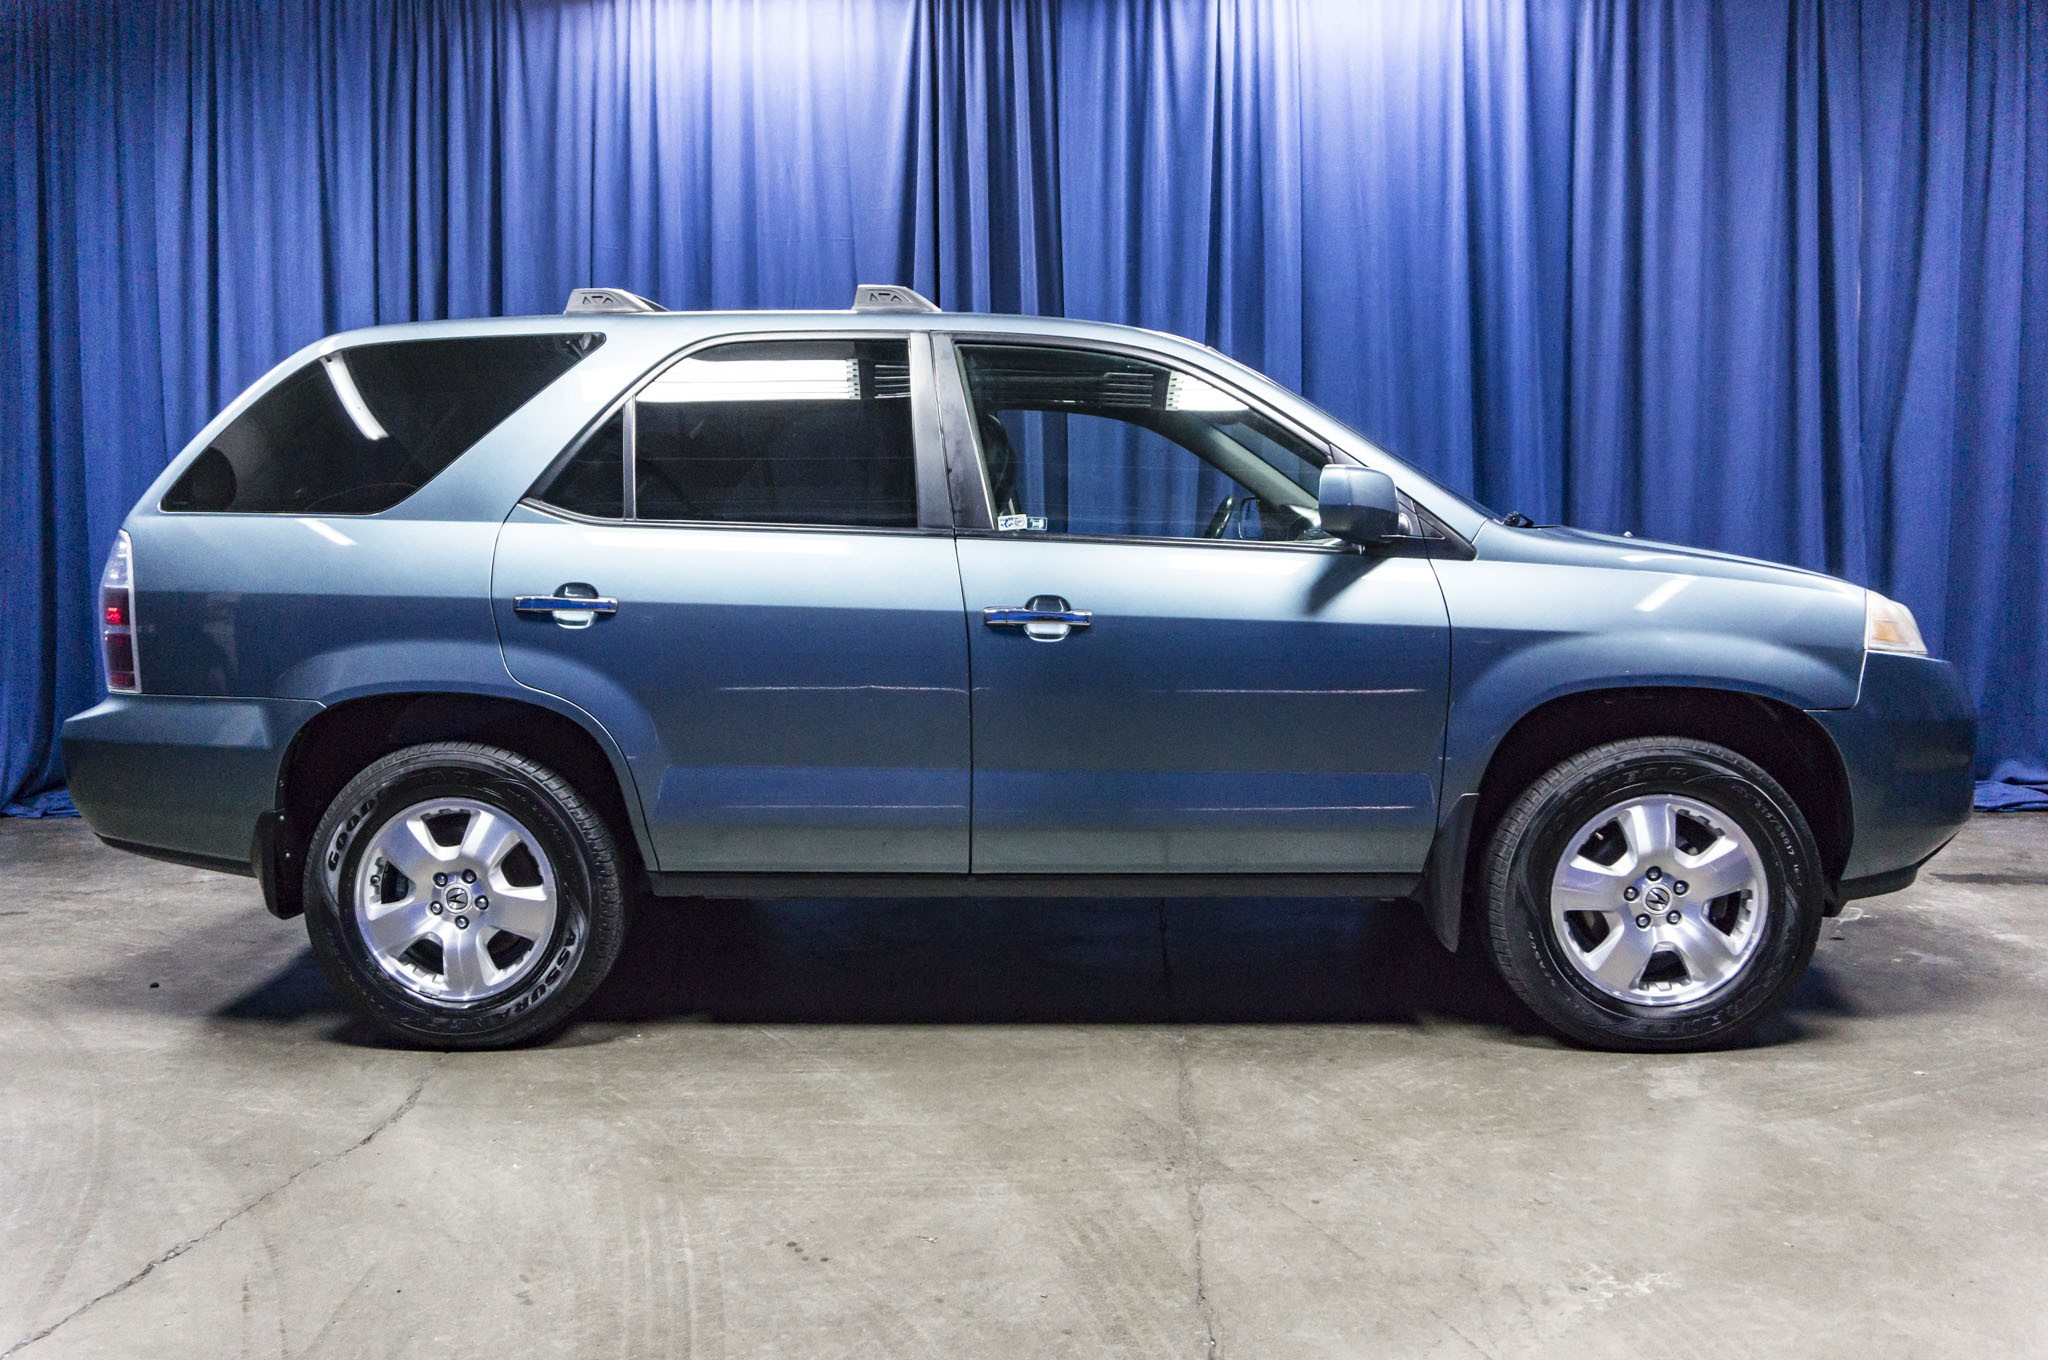 m in at tx mdx motor sports inventory j sale for houston details acura touring